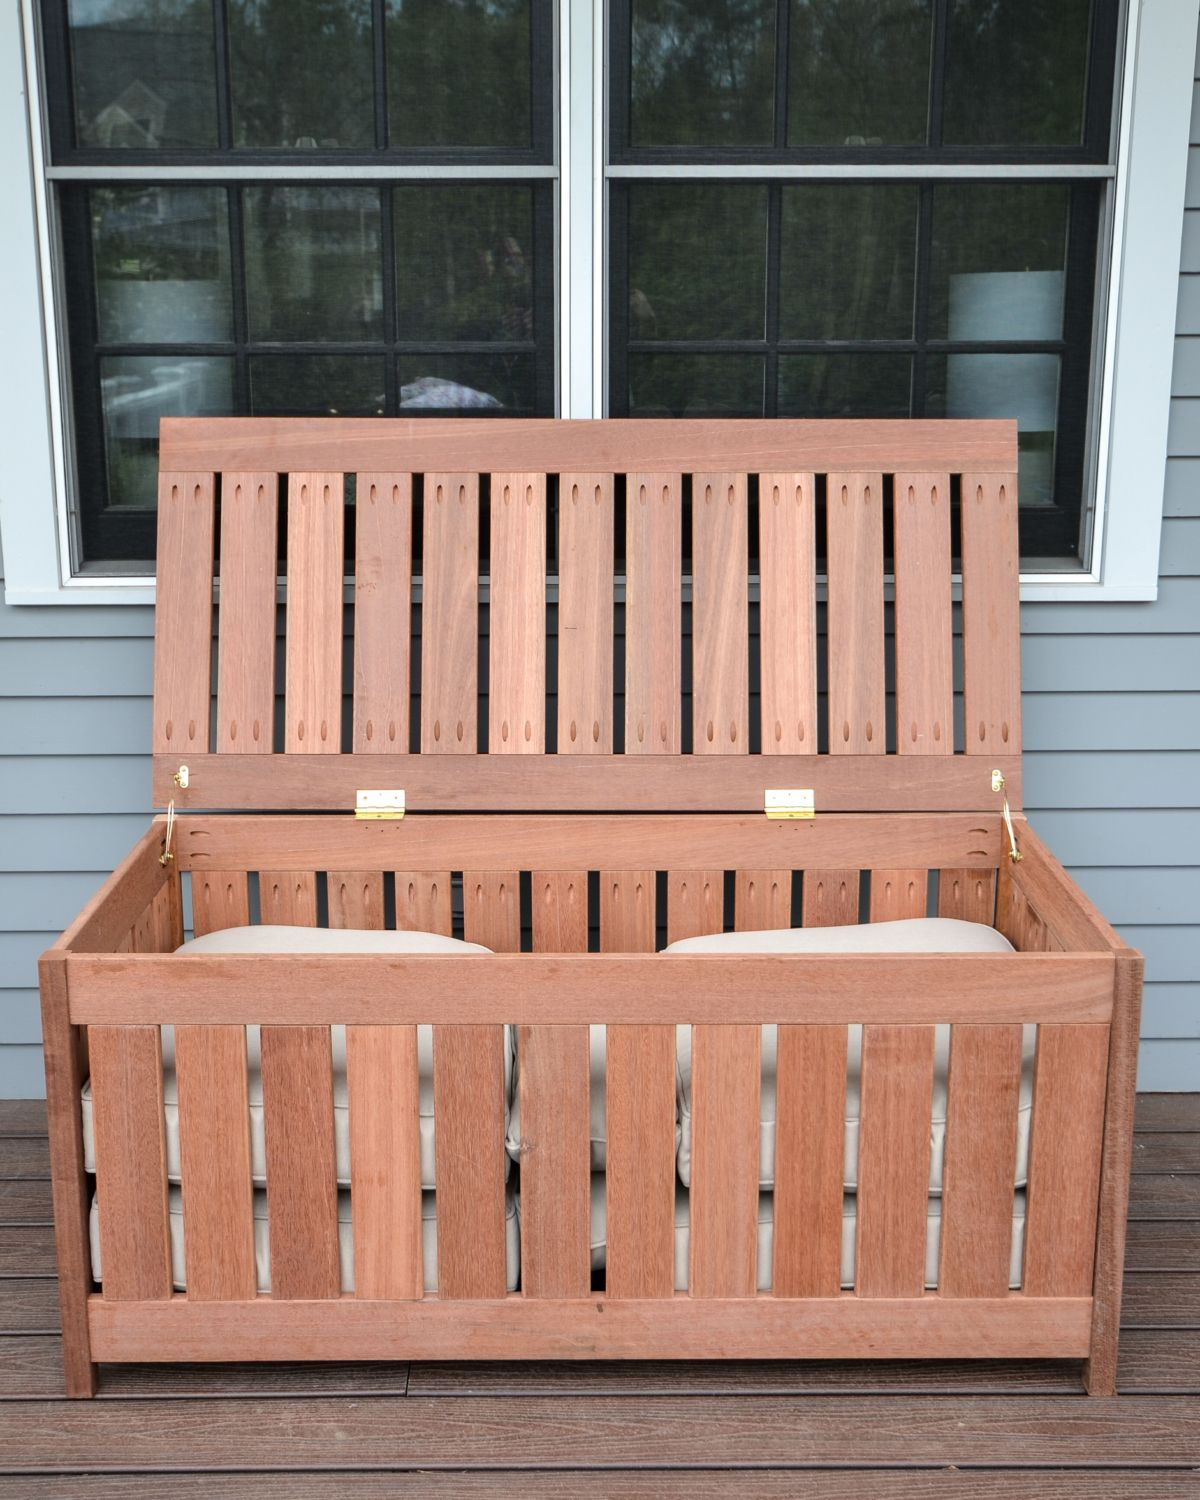 Astonishing Diy Outdoor Storage Box Homework Outdoor Storage Evergreenethics Interior Chair Design Evergreenethicsorg